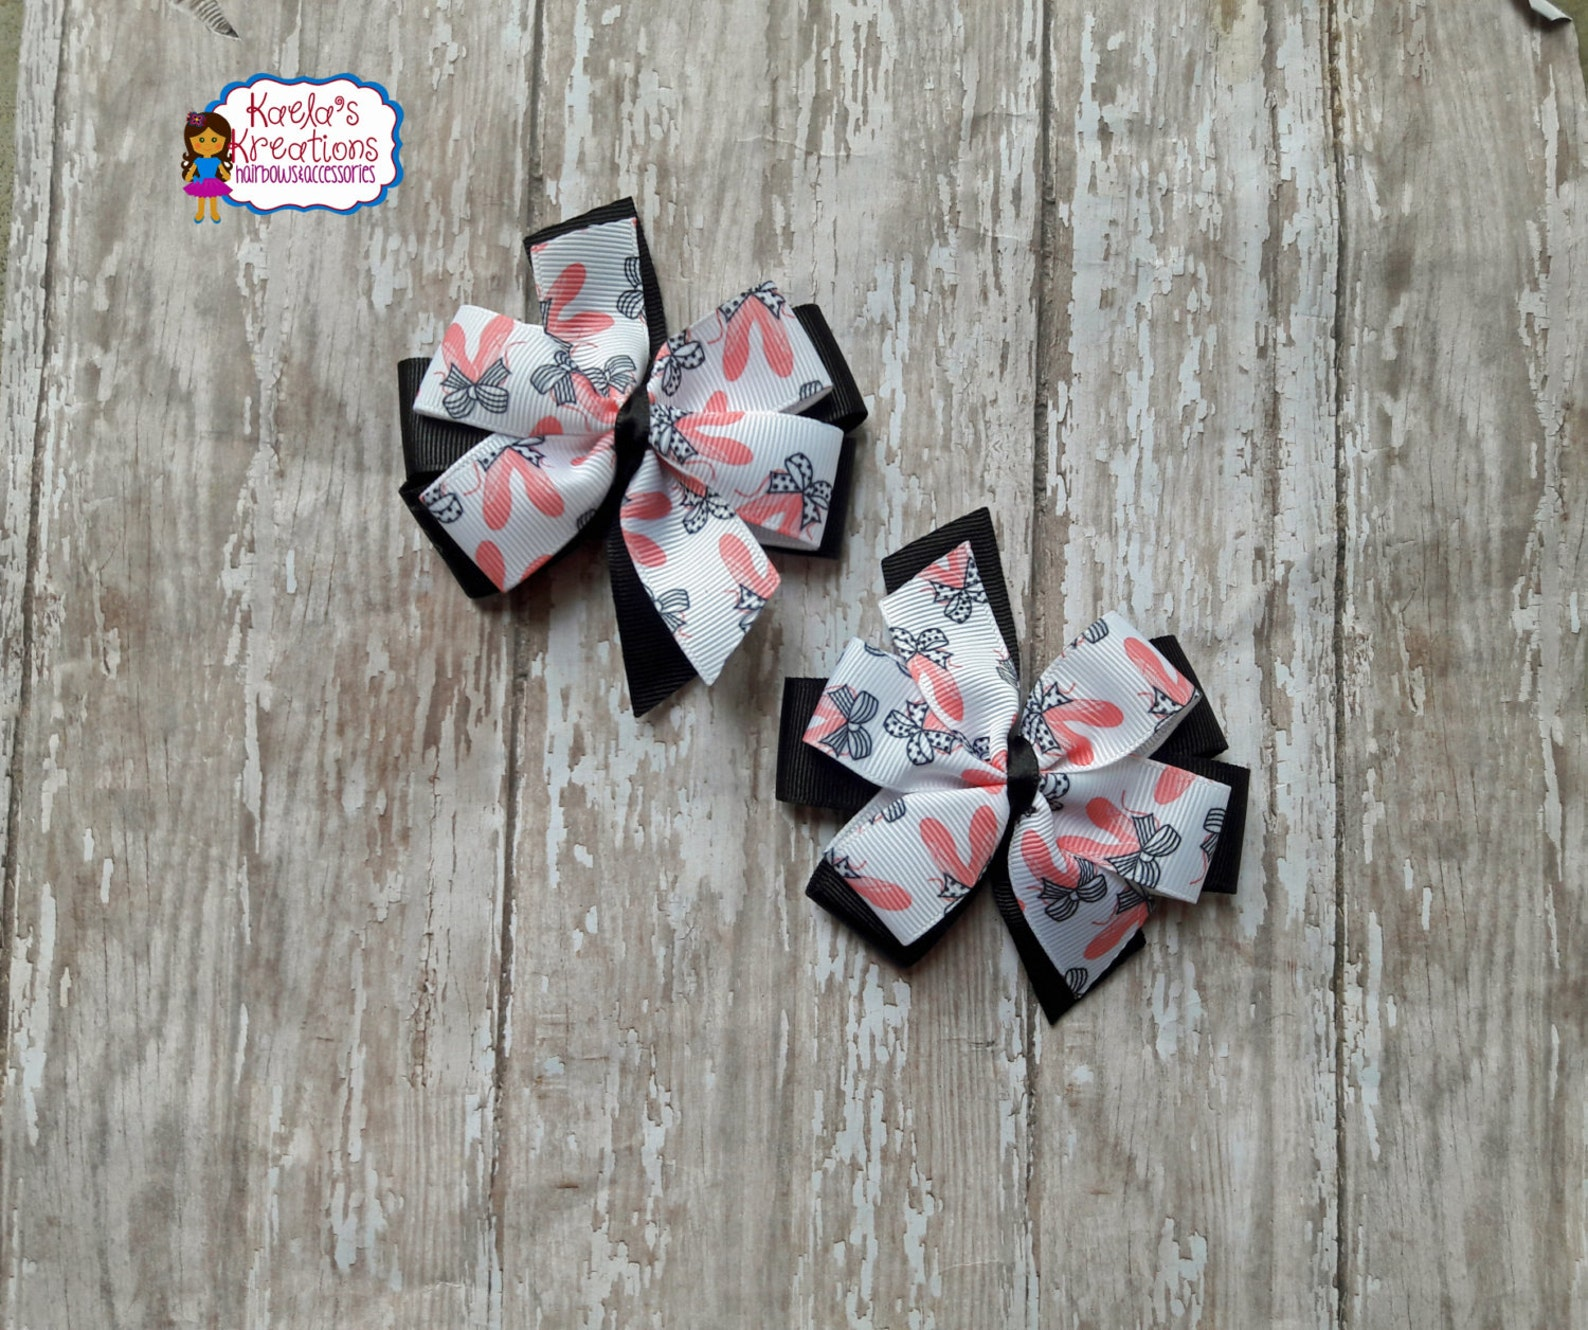 ballet hair bows,ballet bows,pink and black ballet hair bows,black and pink ballet hair bows,ballet.